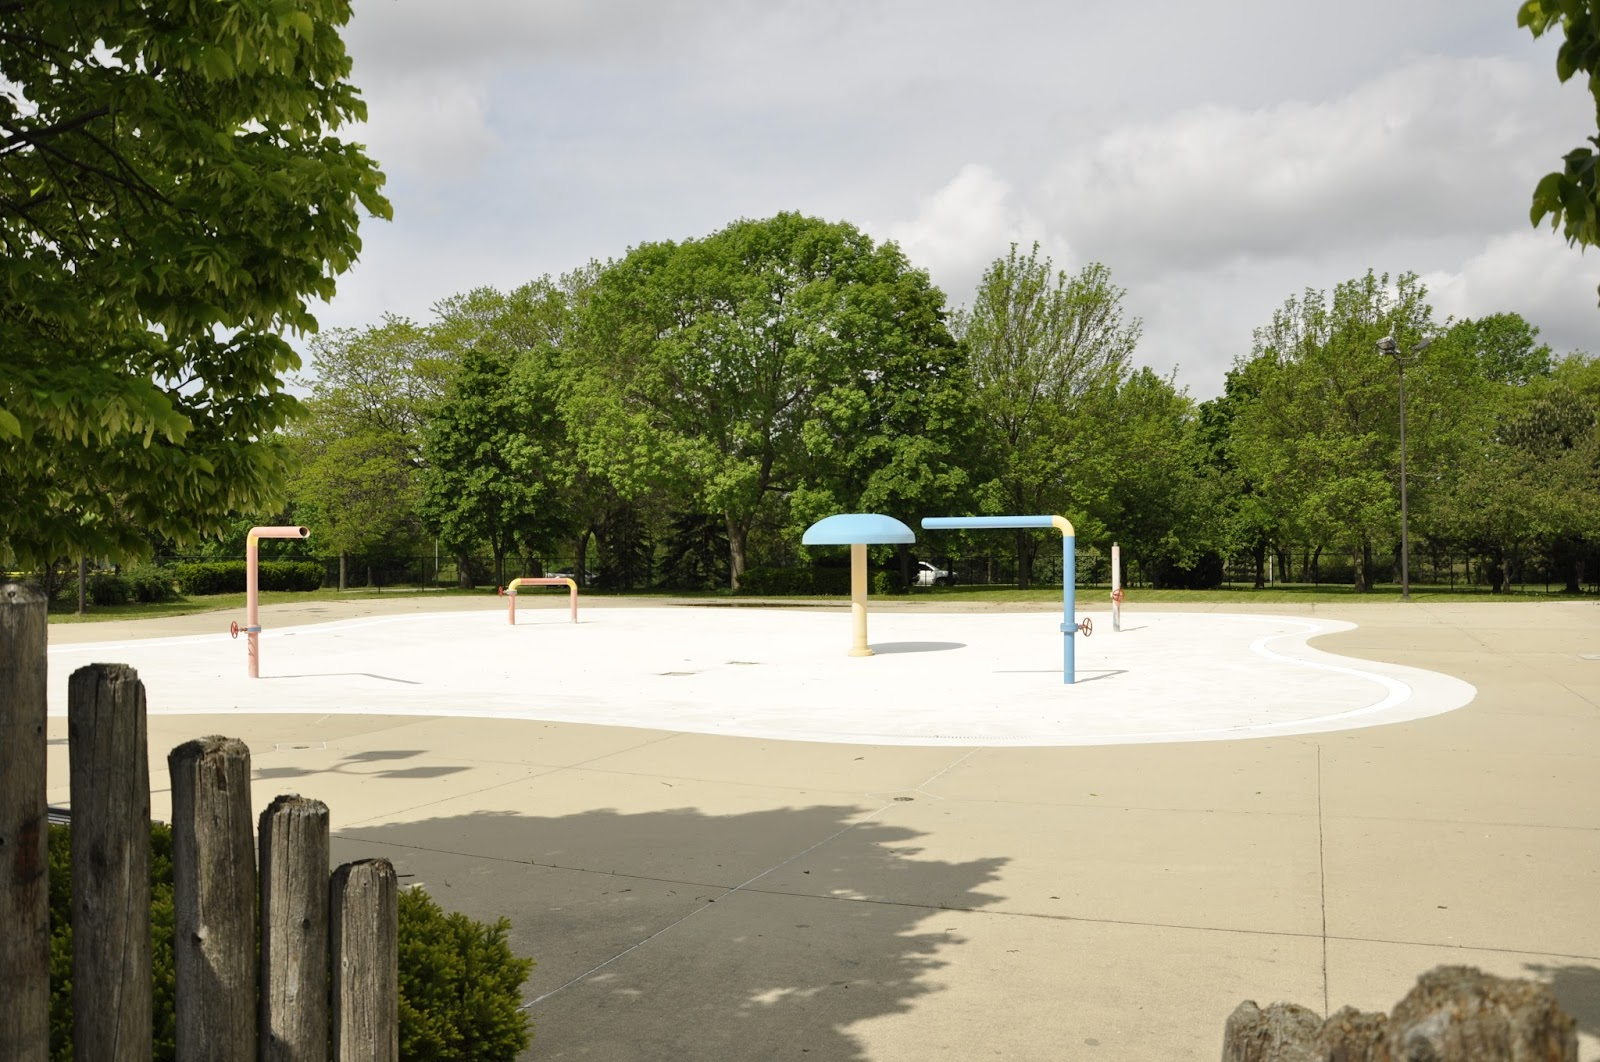 Milwaukee Area Parks: Carver Park for a little Fun in the Sun